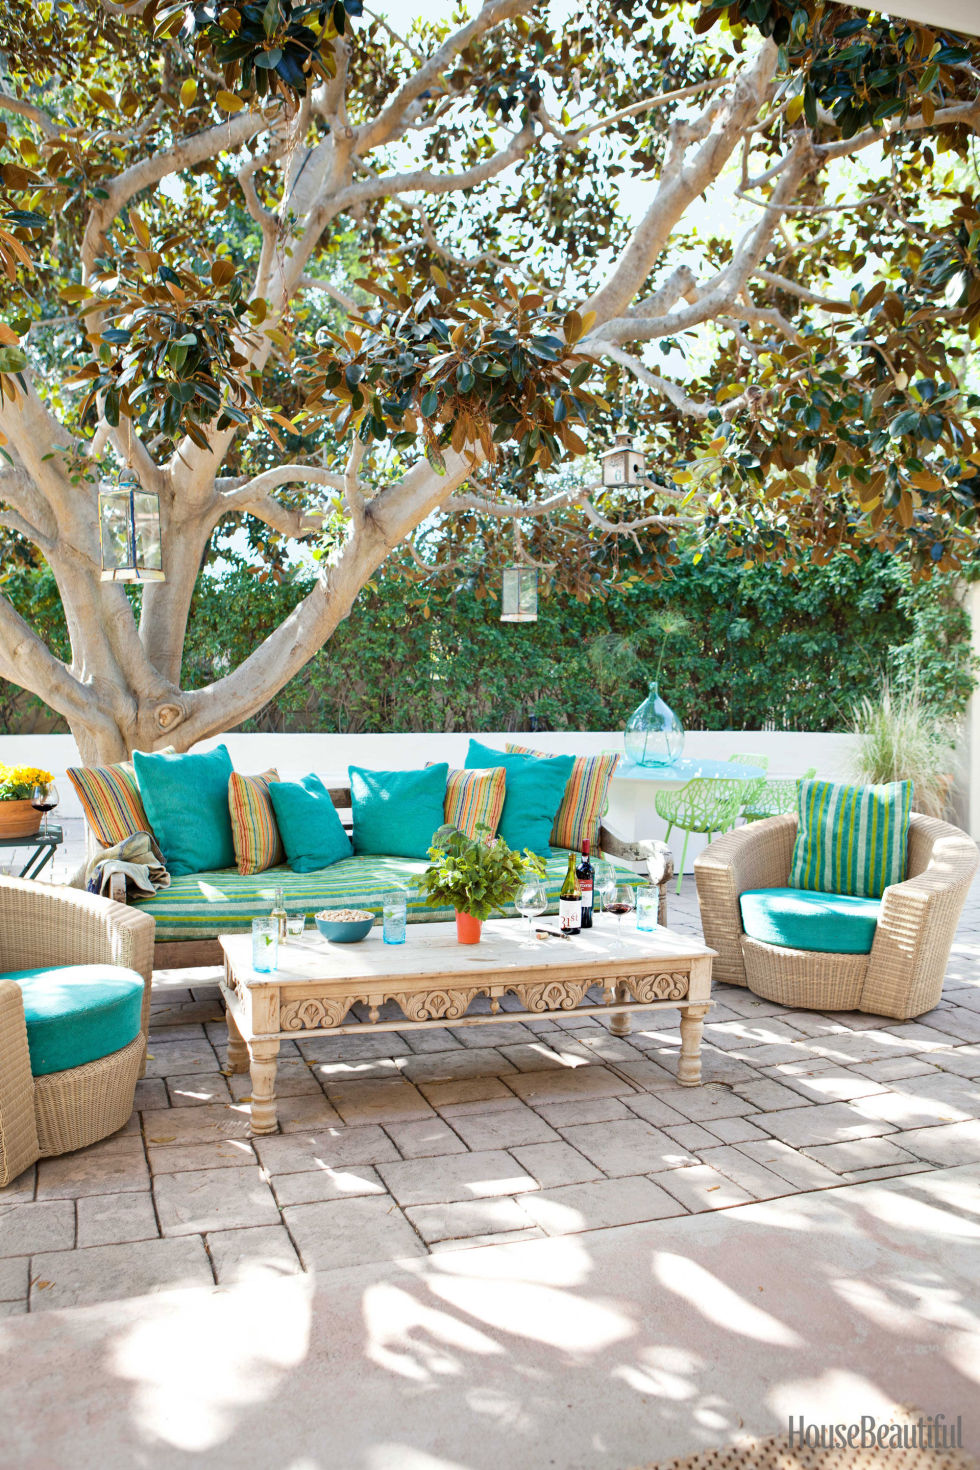 85 patio and outdoor room design ideas and photos - Patio Decor